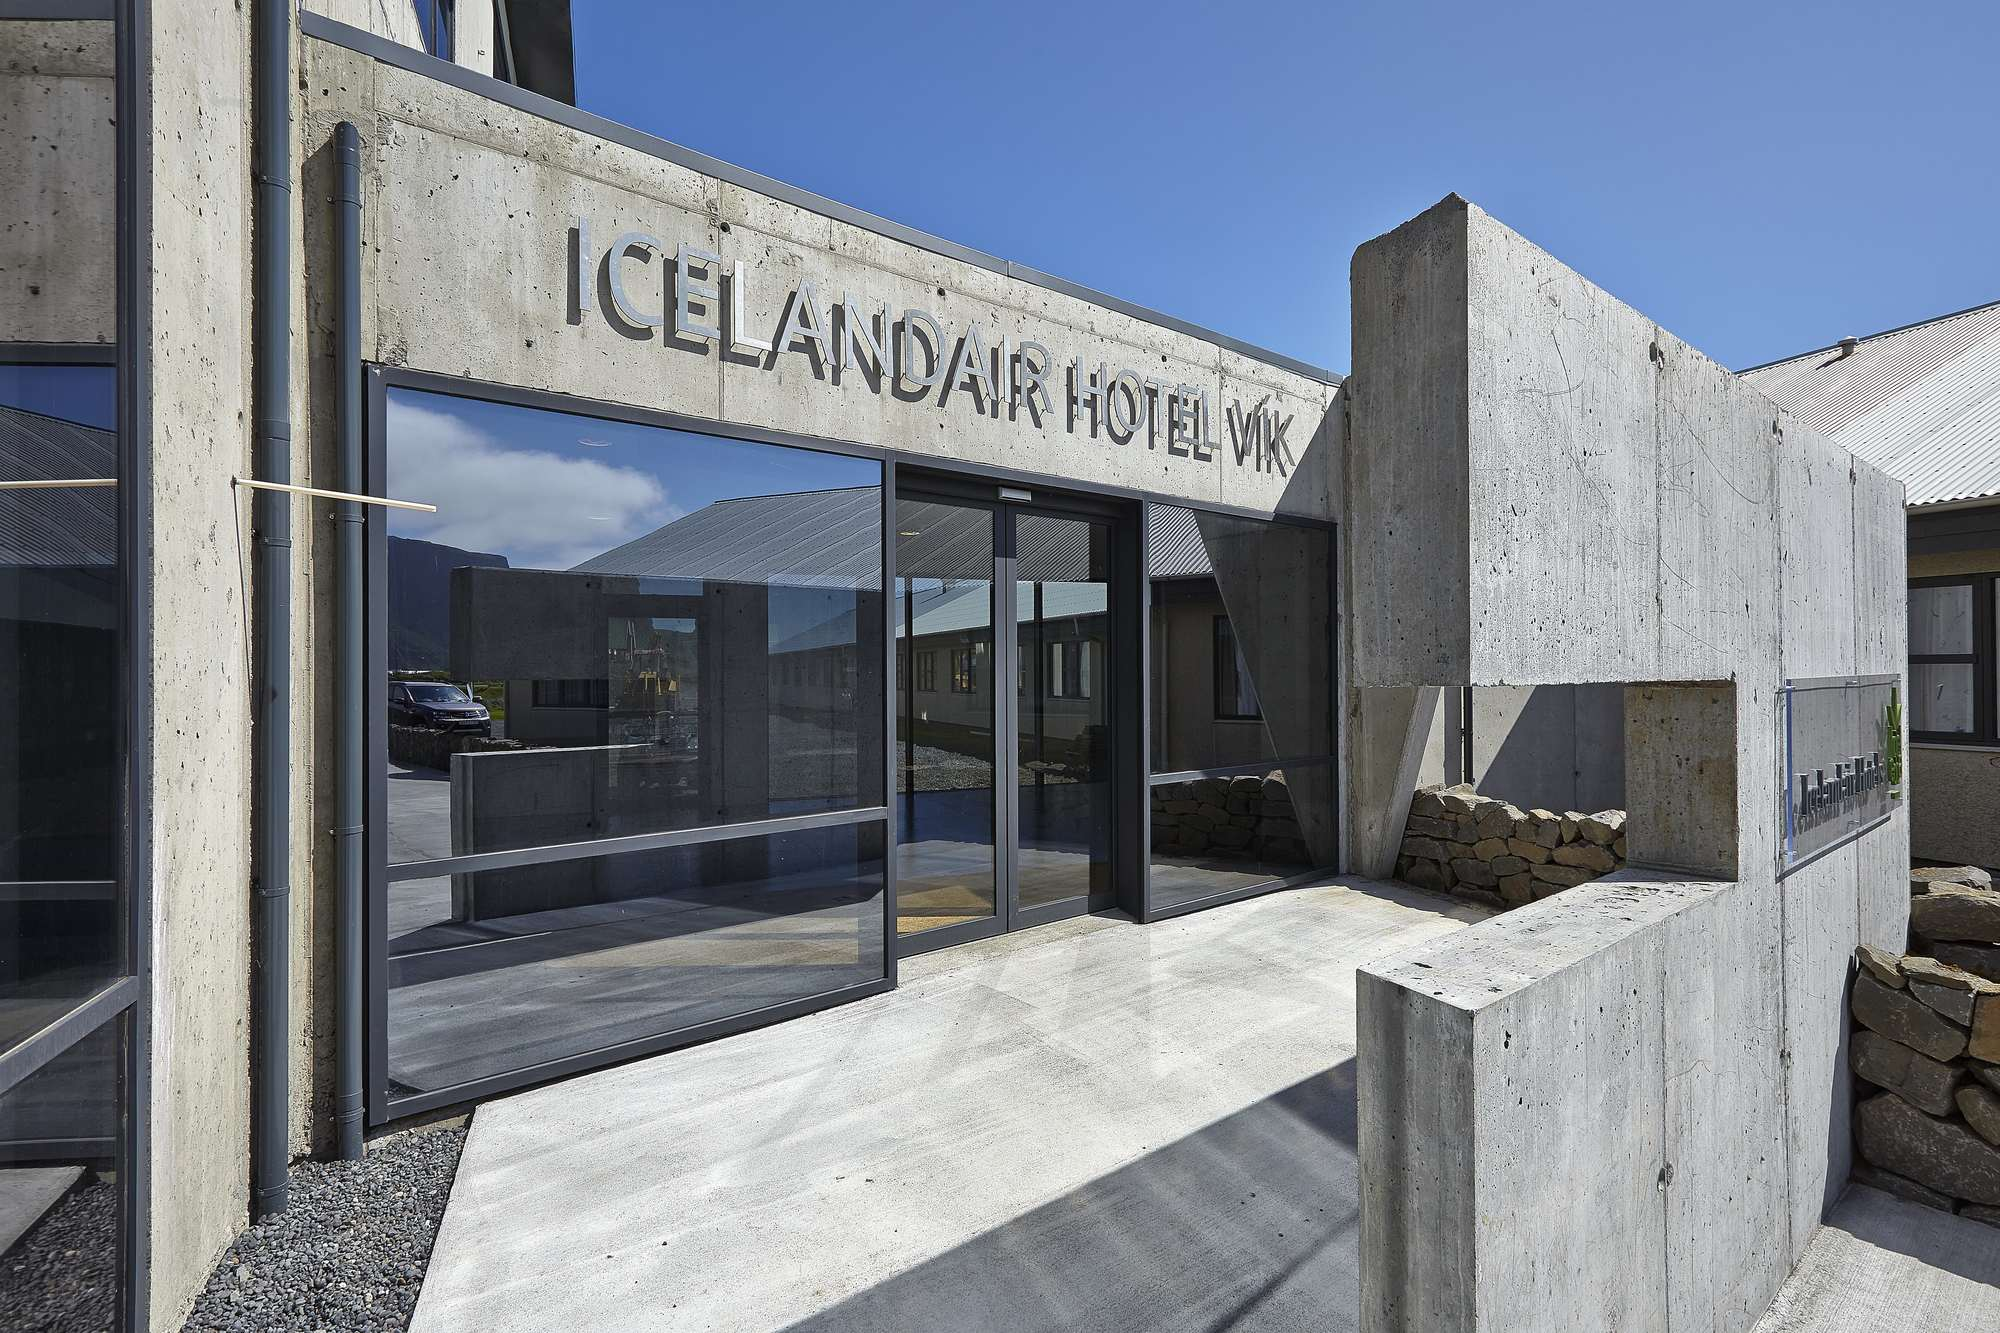 Icelandair Hotel Vik Is A Charming In Wonderful Setting The Village Of Myrdalur Valley It Nestled Under Sandstone Hills And